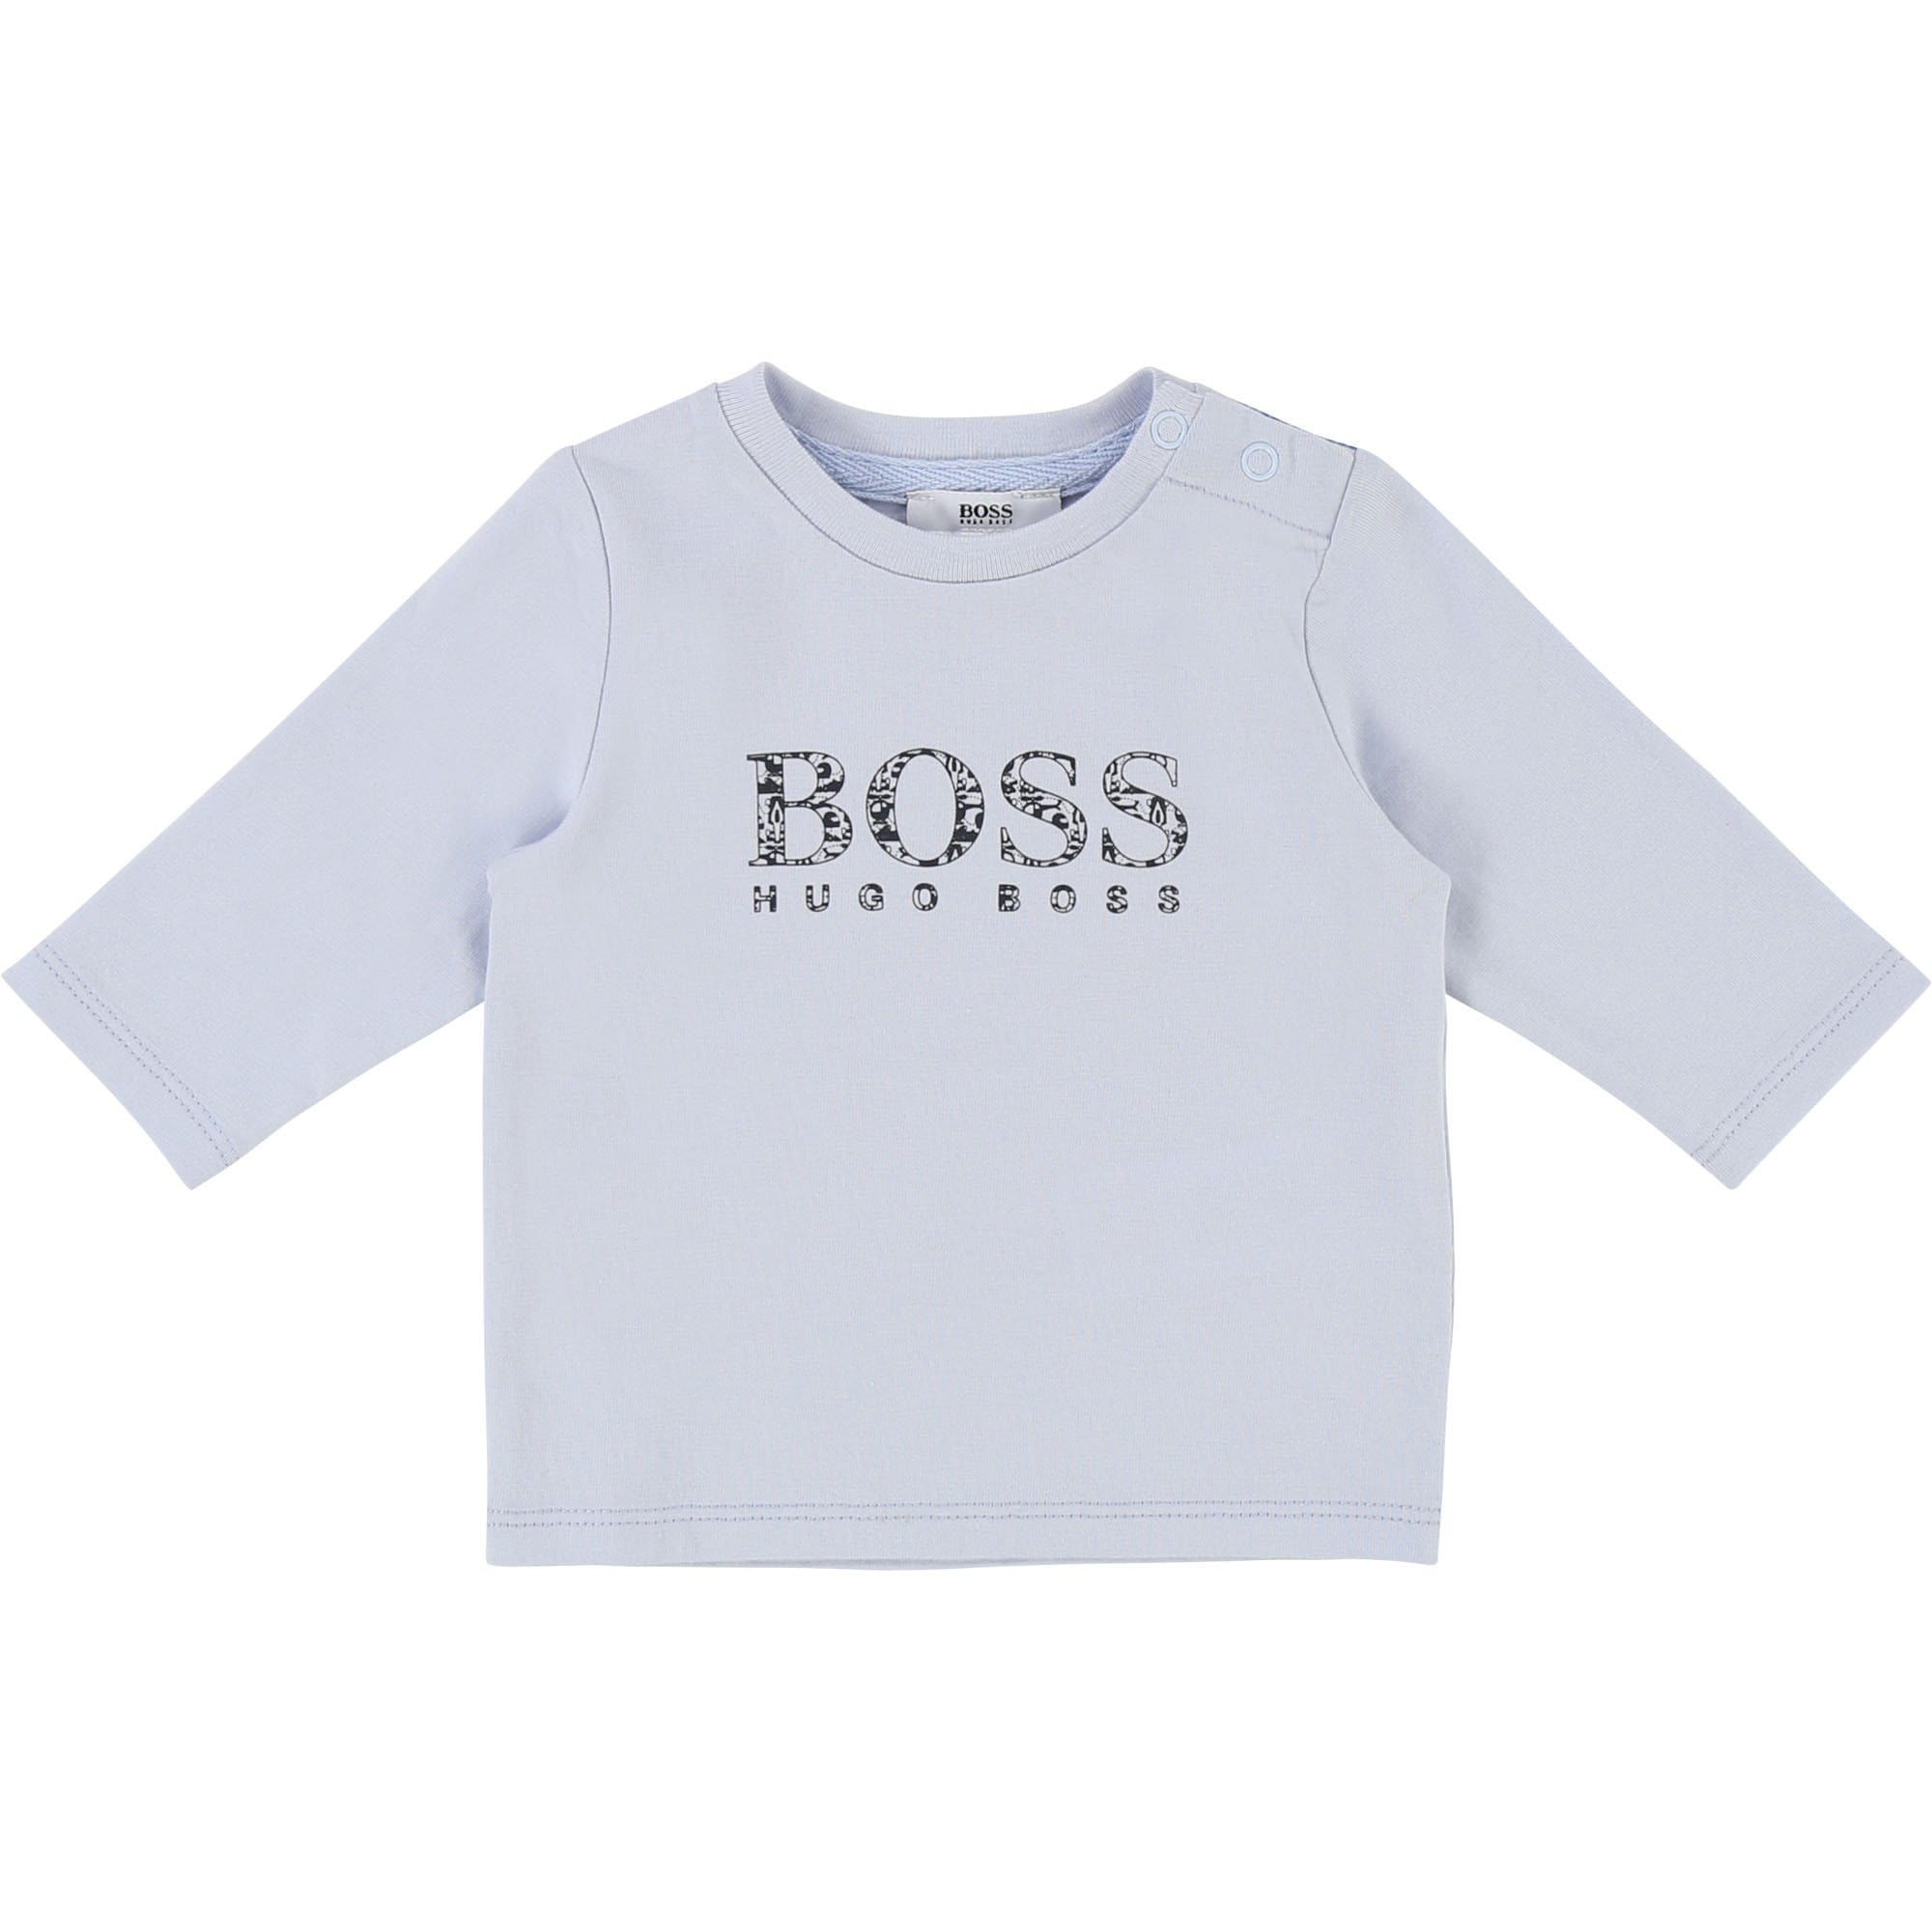 Hugo Boss Baby Long Sleeve T-Shirt Pale Blue J95257/771